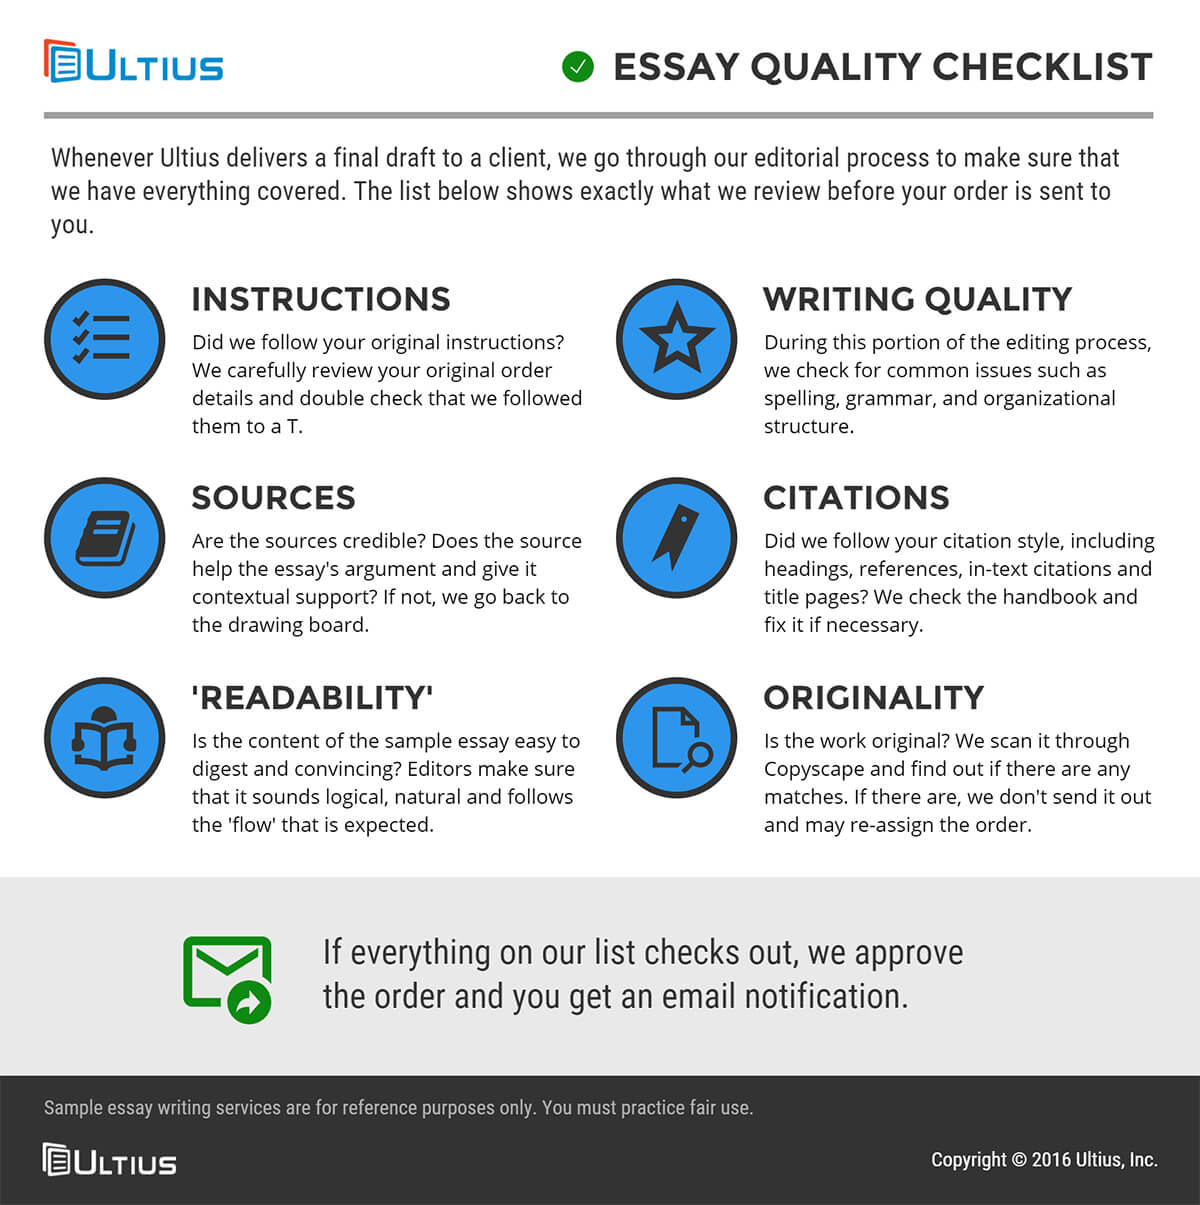 Buy an Essay in 35+ Subjects